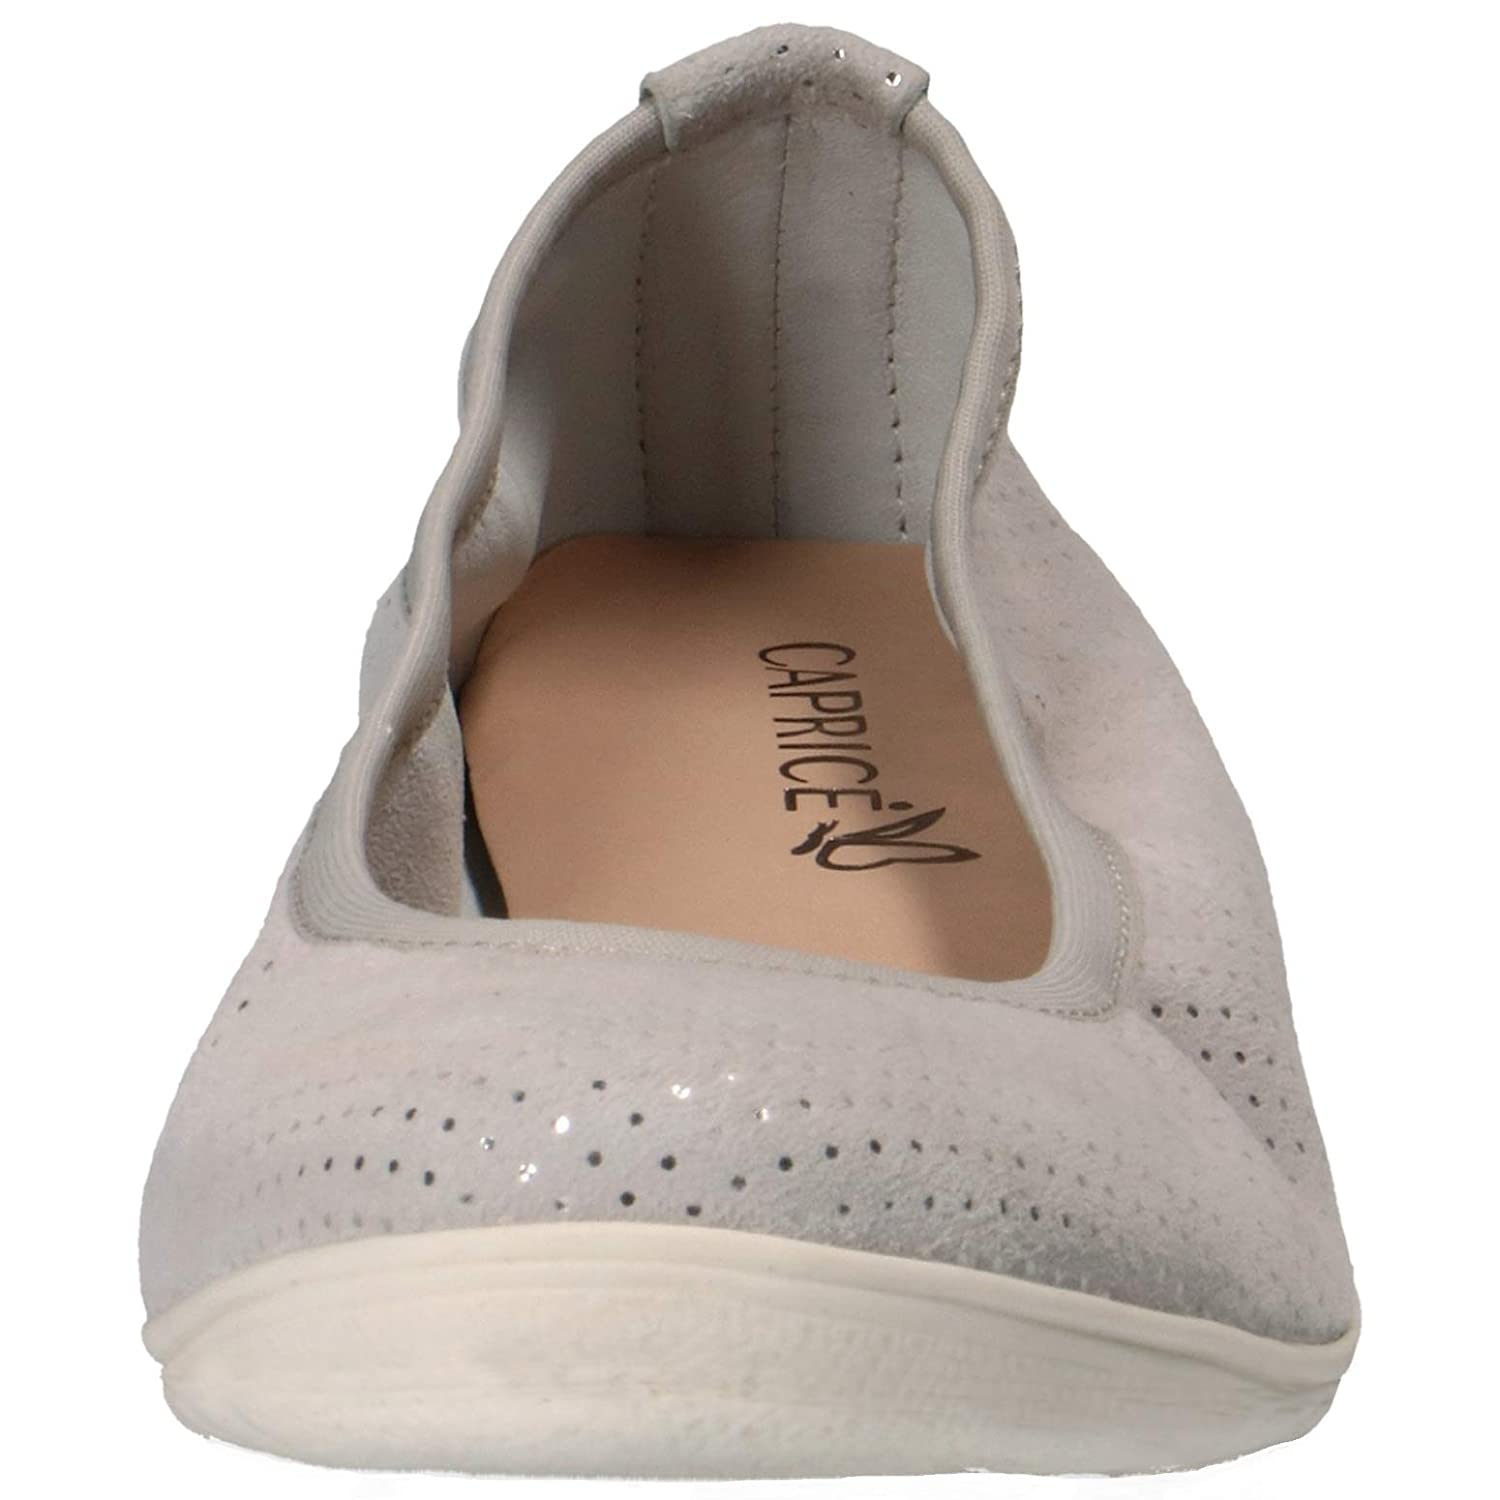 Caprice 22142 Womens Shoes Grey